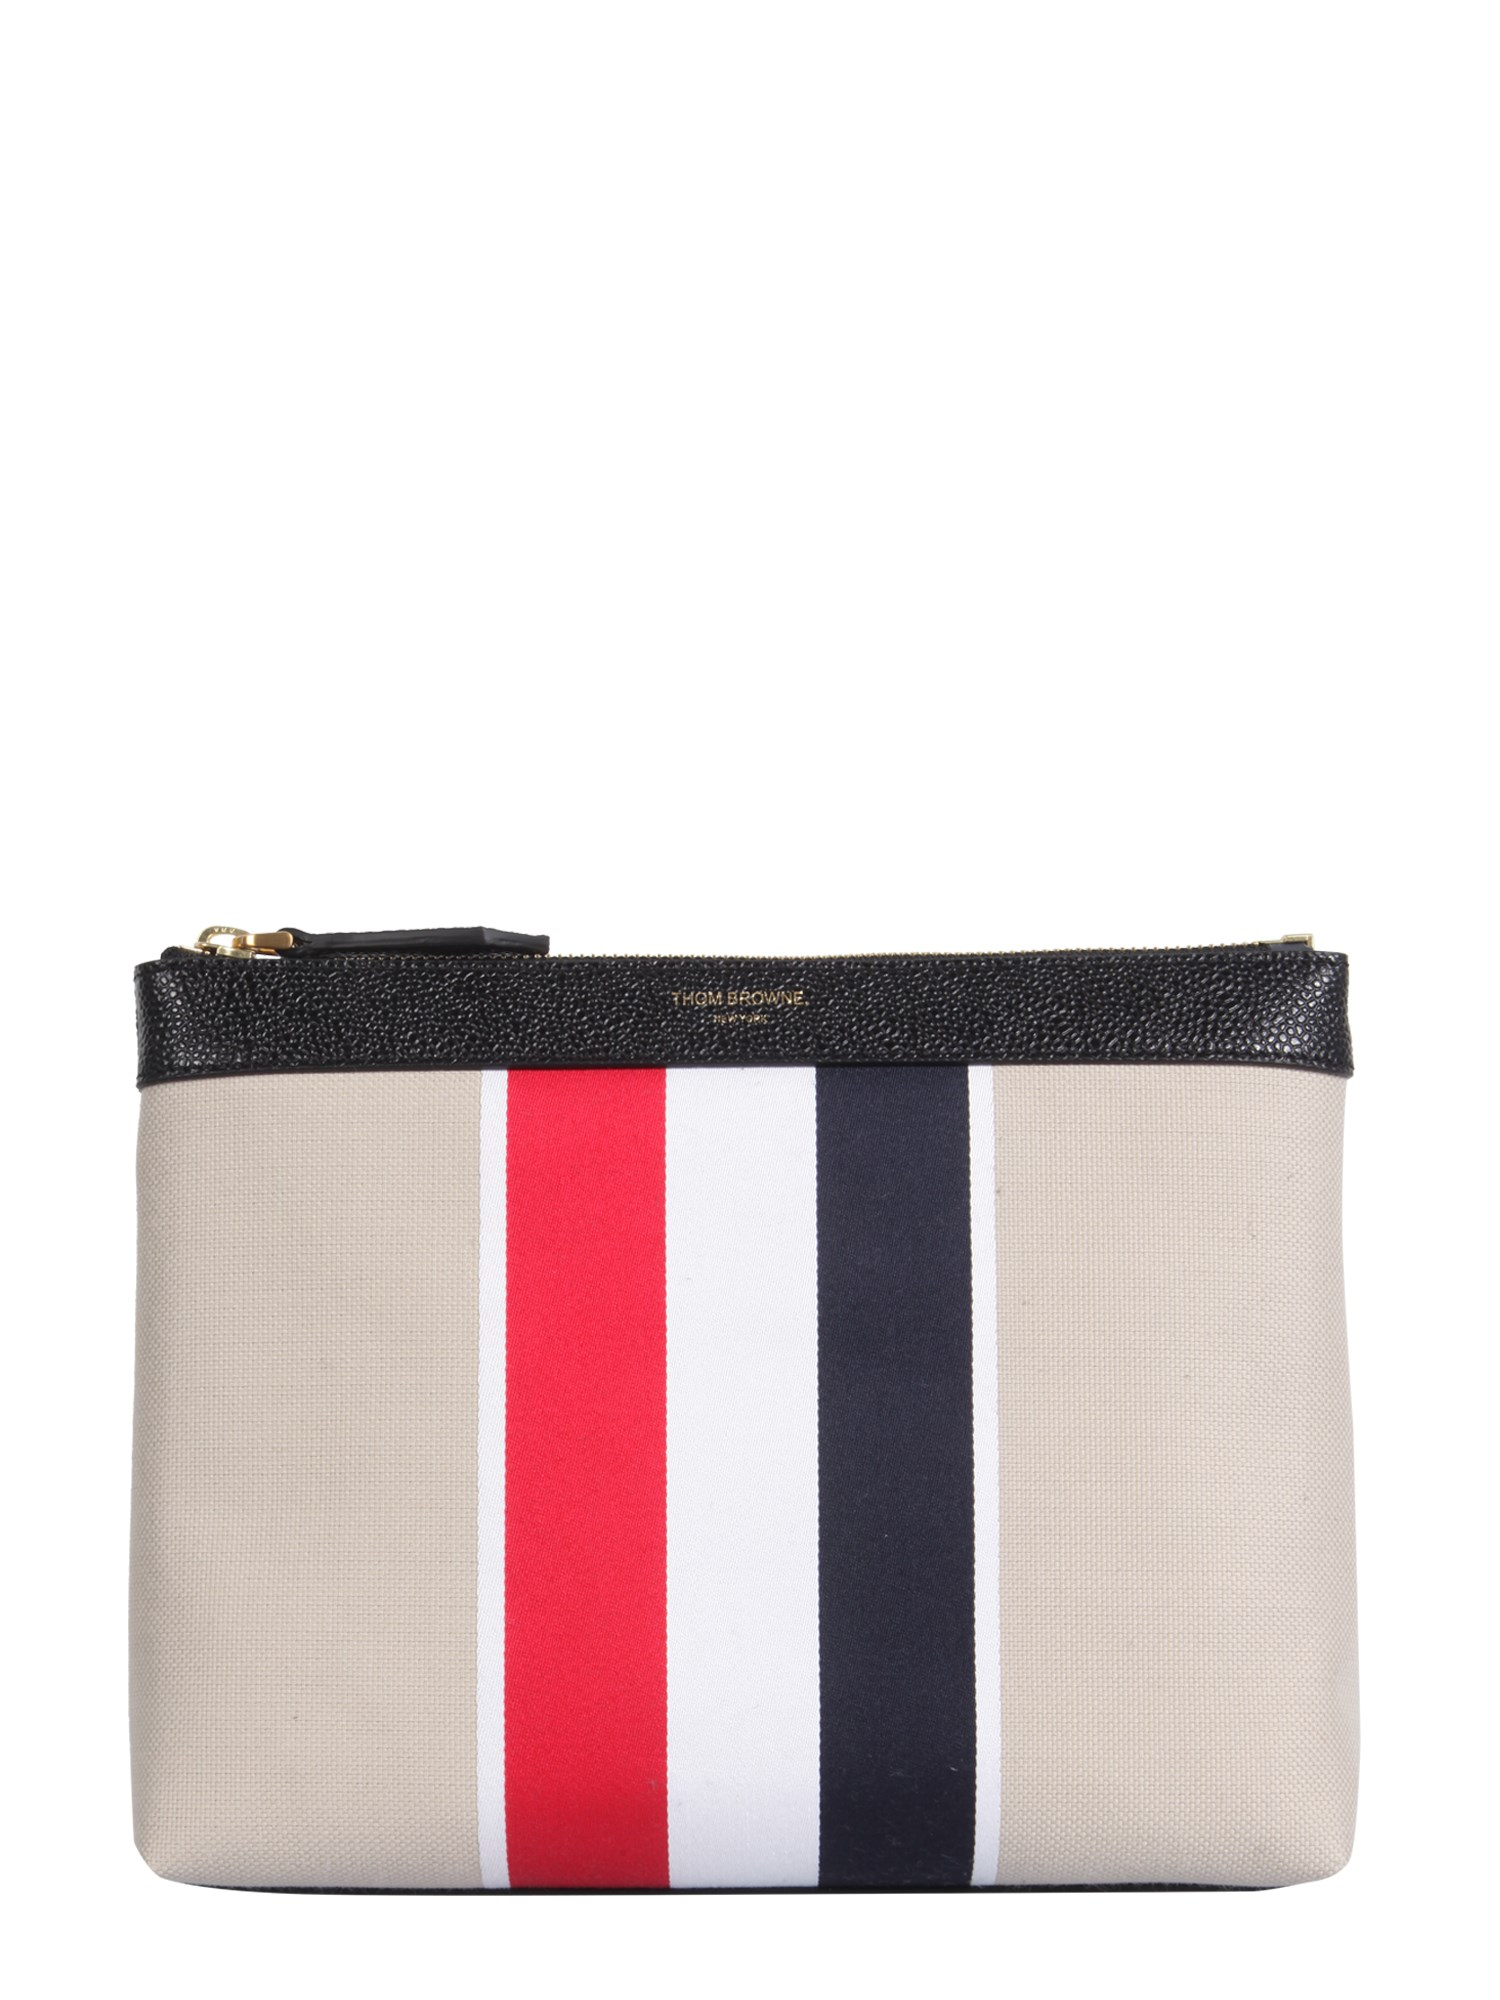 Thom Browne Canvases TOILETRY CANVAS CASE